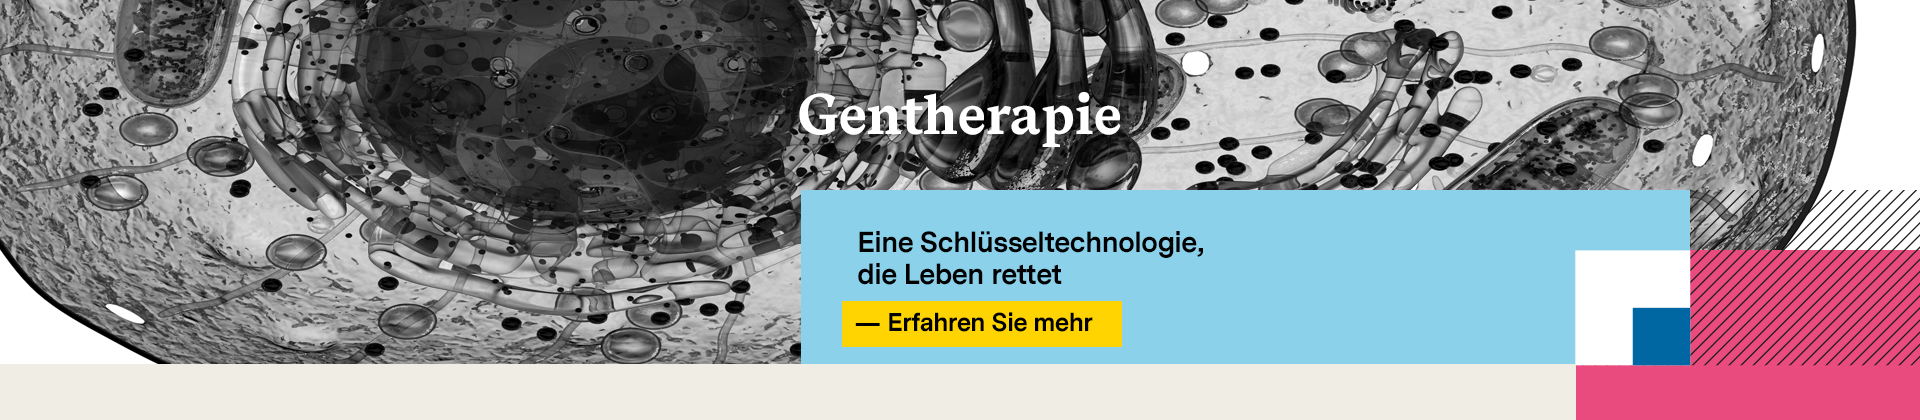 Gentherapie